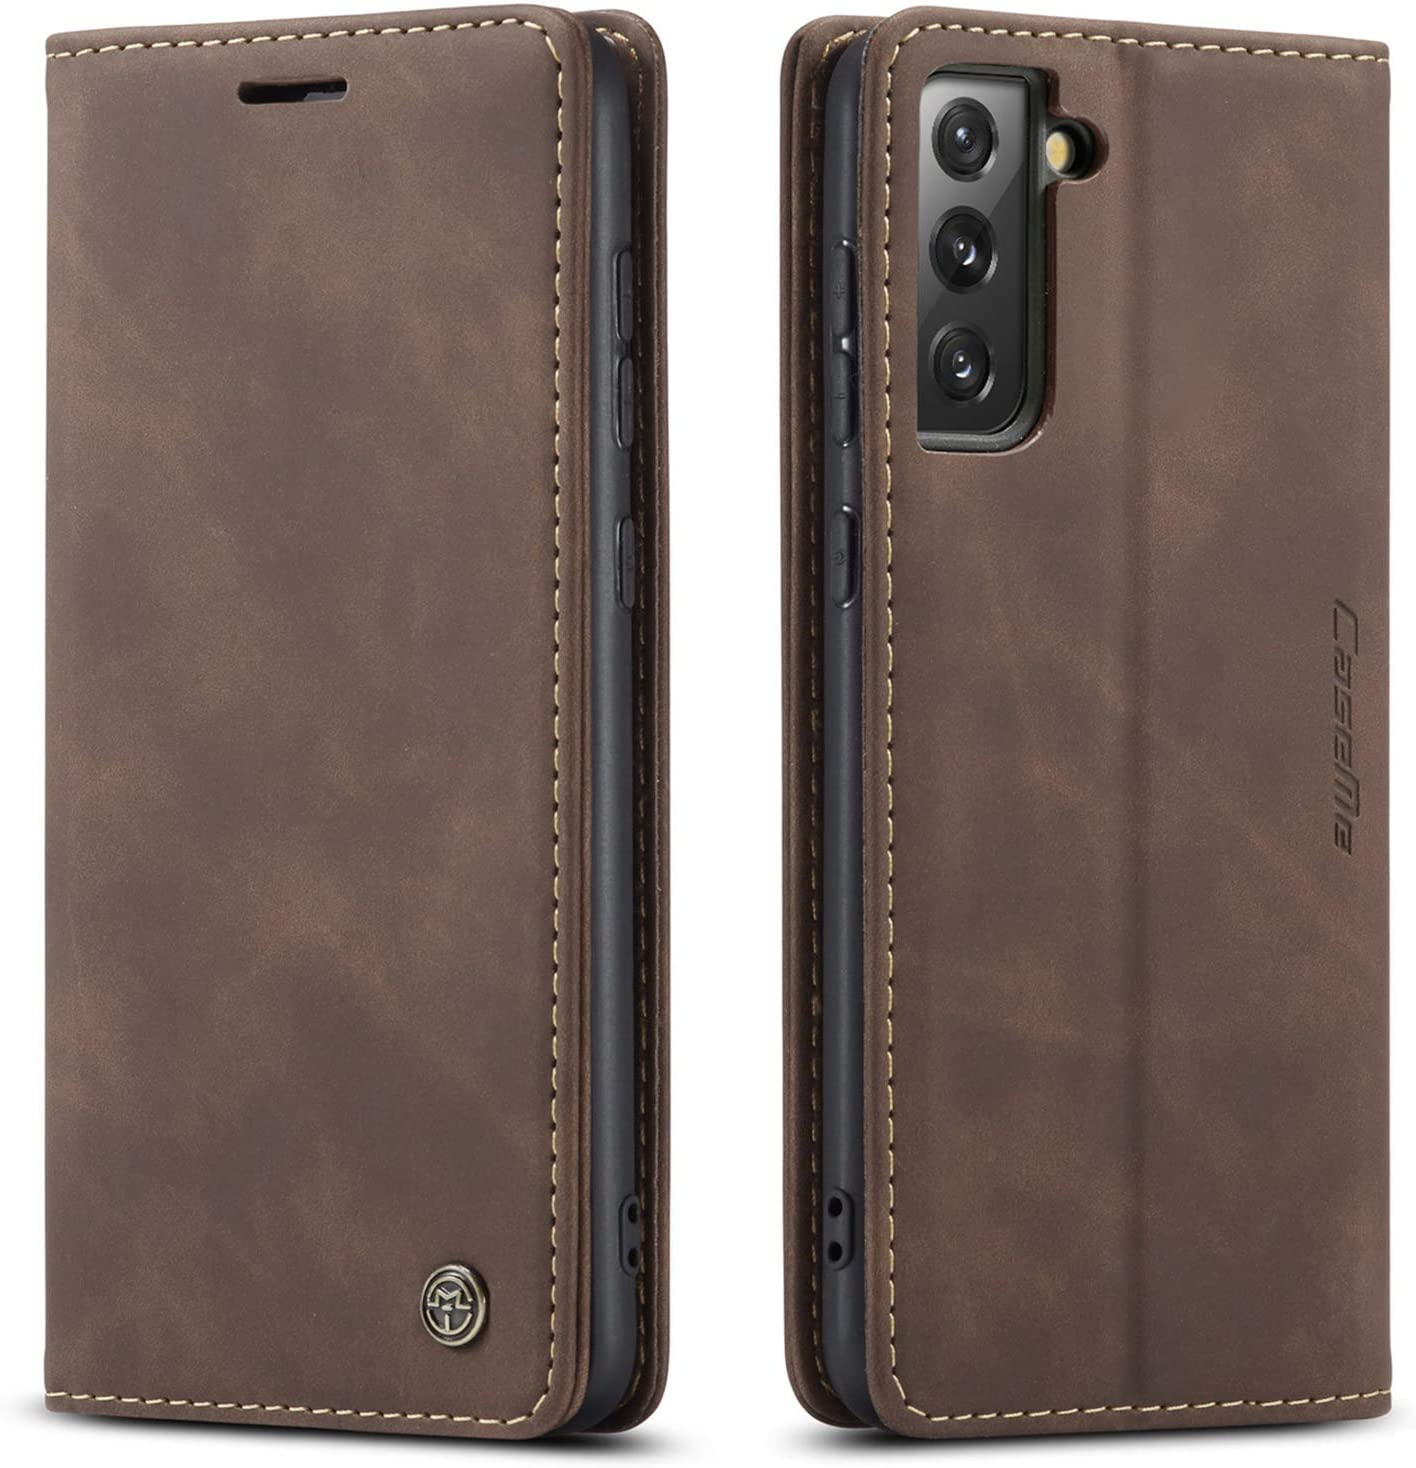 Kowauri Flip Case for Galaxy S21,Leather Wallet Case Classic Design with Card Slot and Magnetic Closure Flip Fold Case for Samsung Galaxy S21 5G (Coffee)